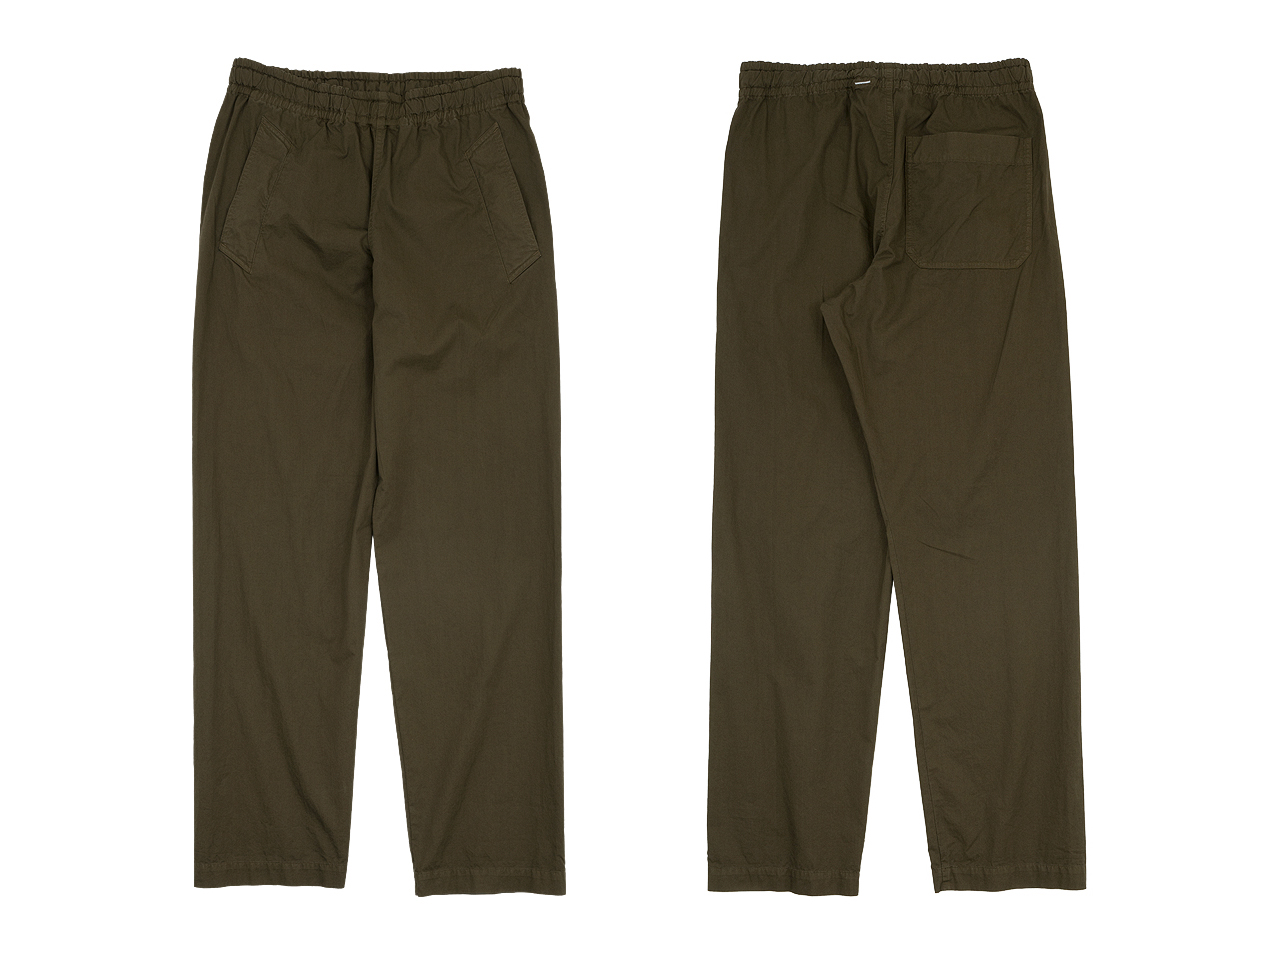 MHL. SUPERFINE COTTON TWILL TROUSERS〔メンズ〕